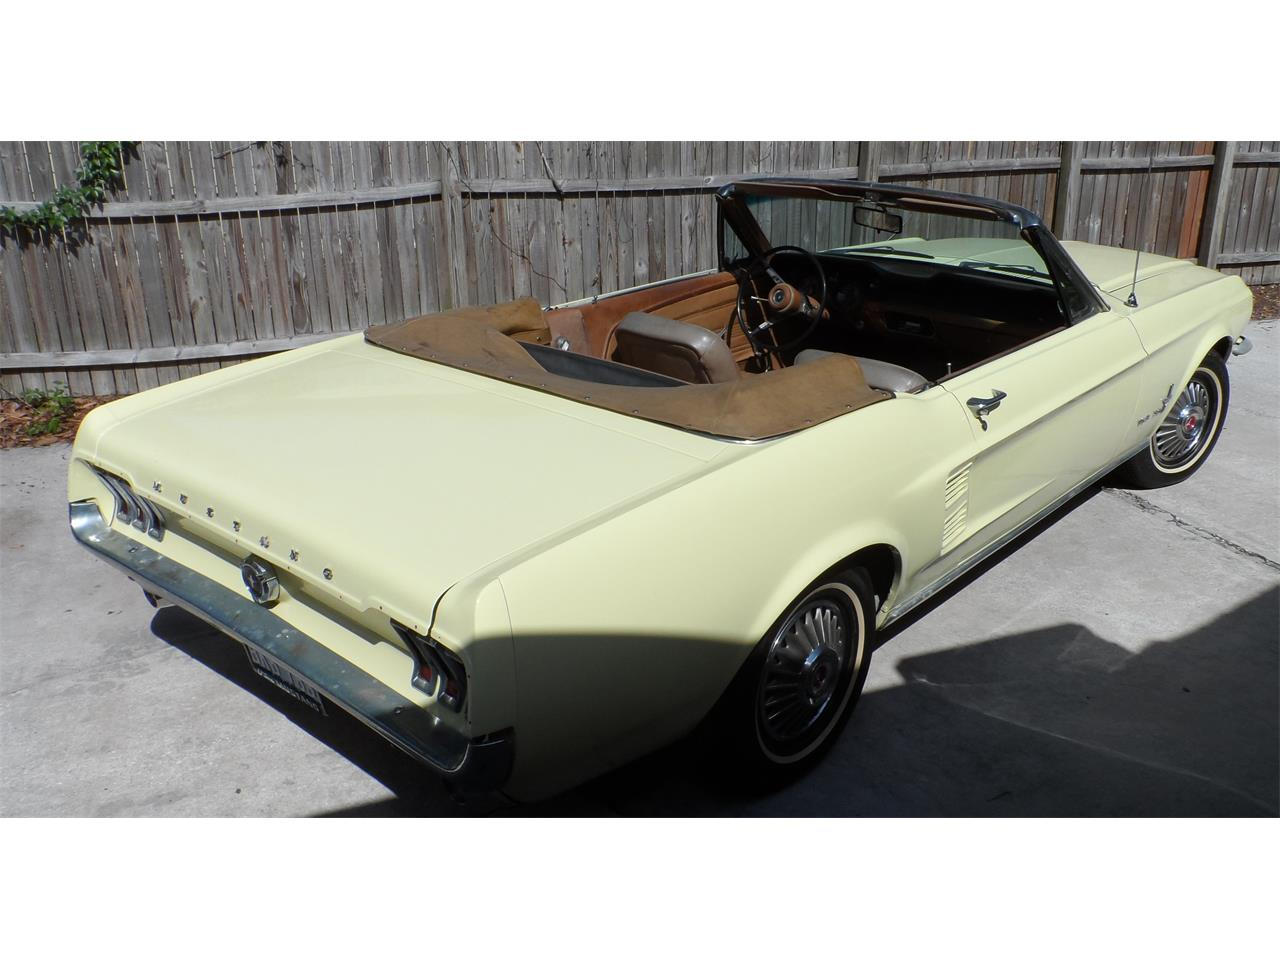 Large Picture of '67 Ford Mustang - $25,000.00 Offered by a Private Seller - K8GW